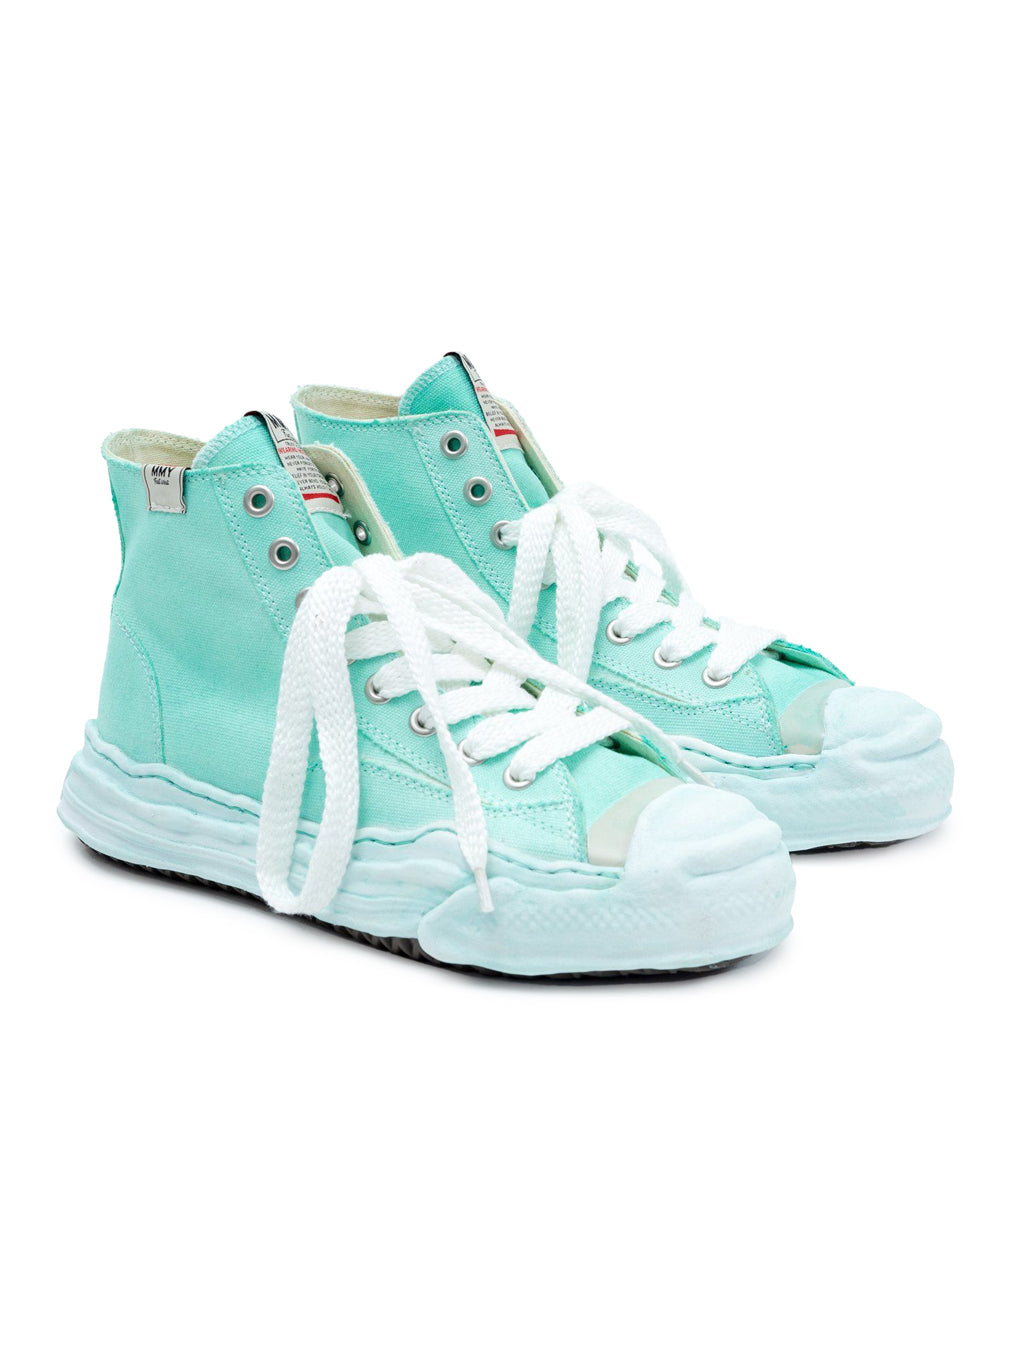 Green Original Sole Toe Cap High Top Sneaker